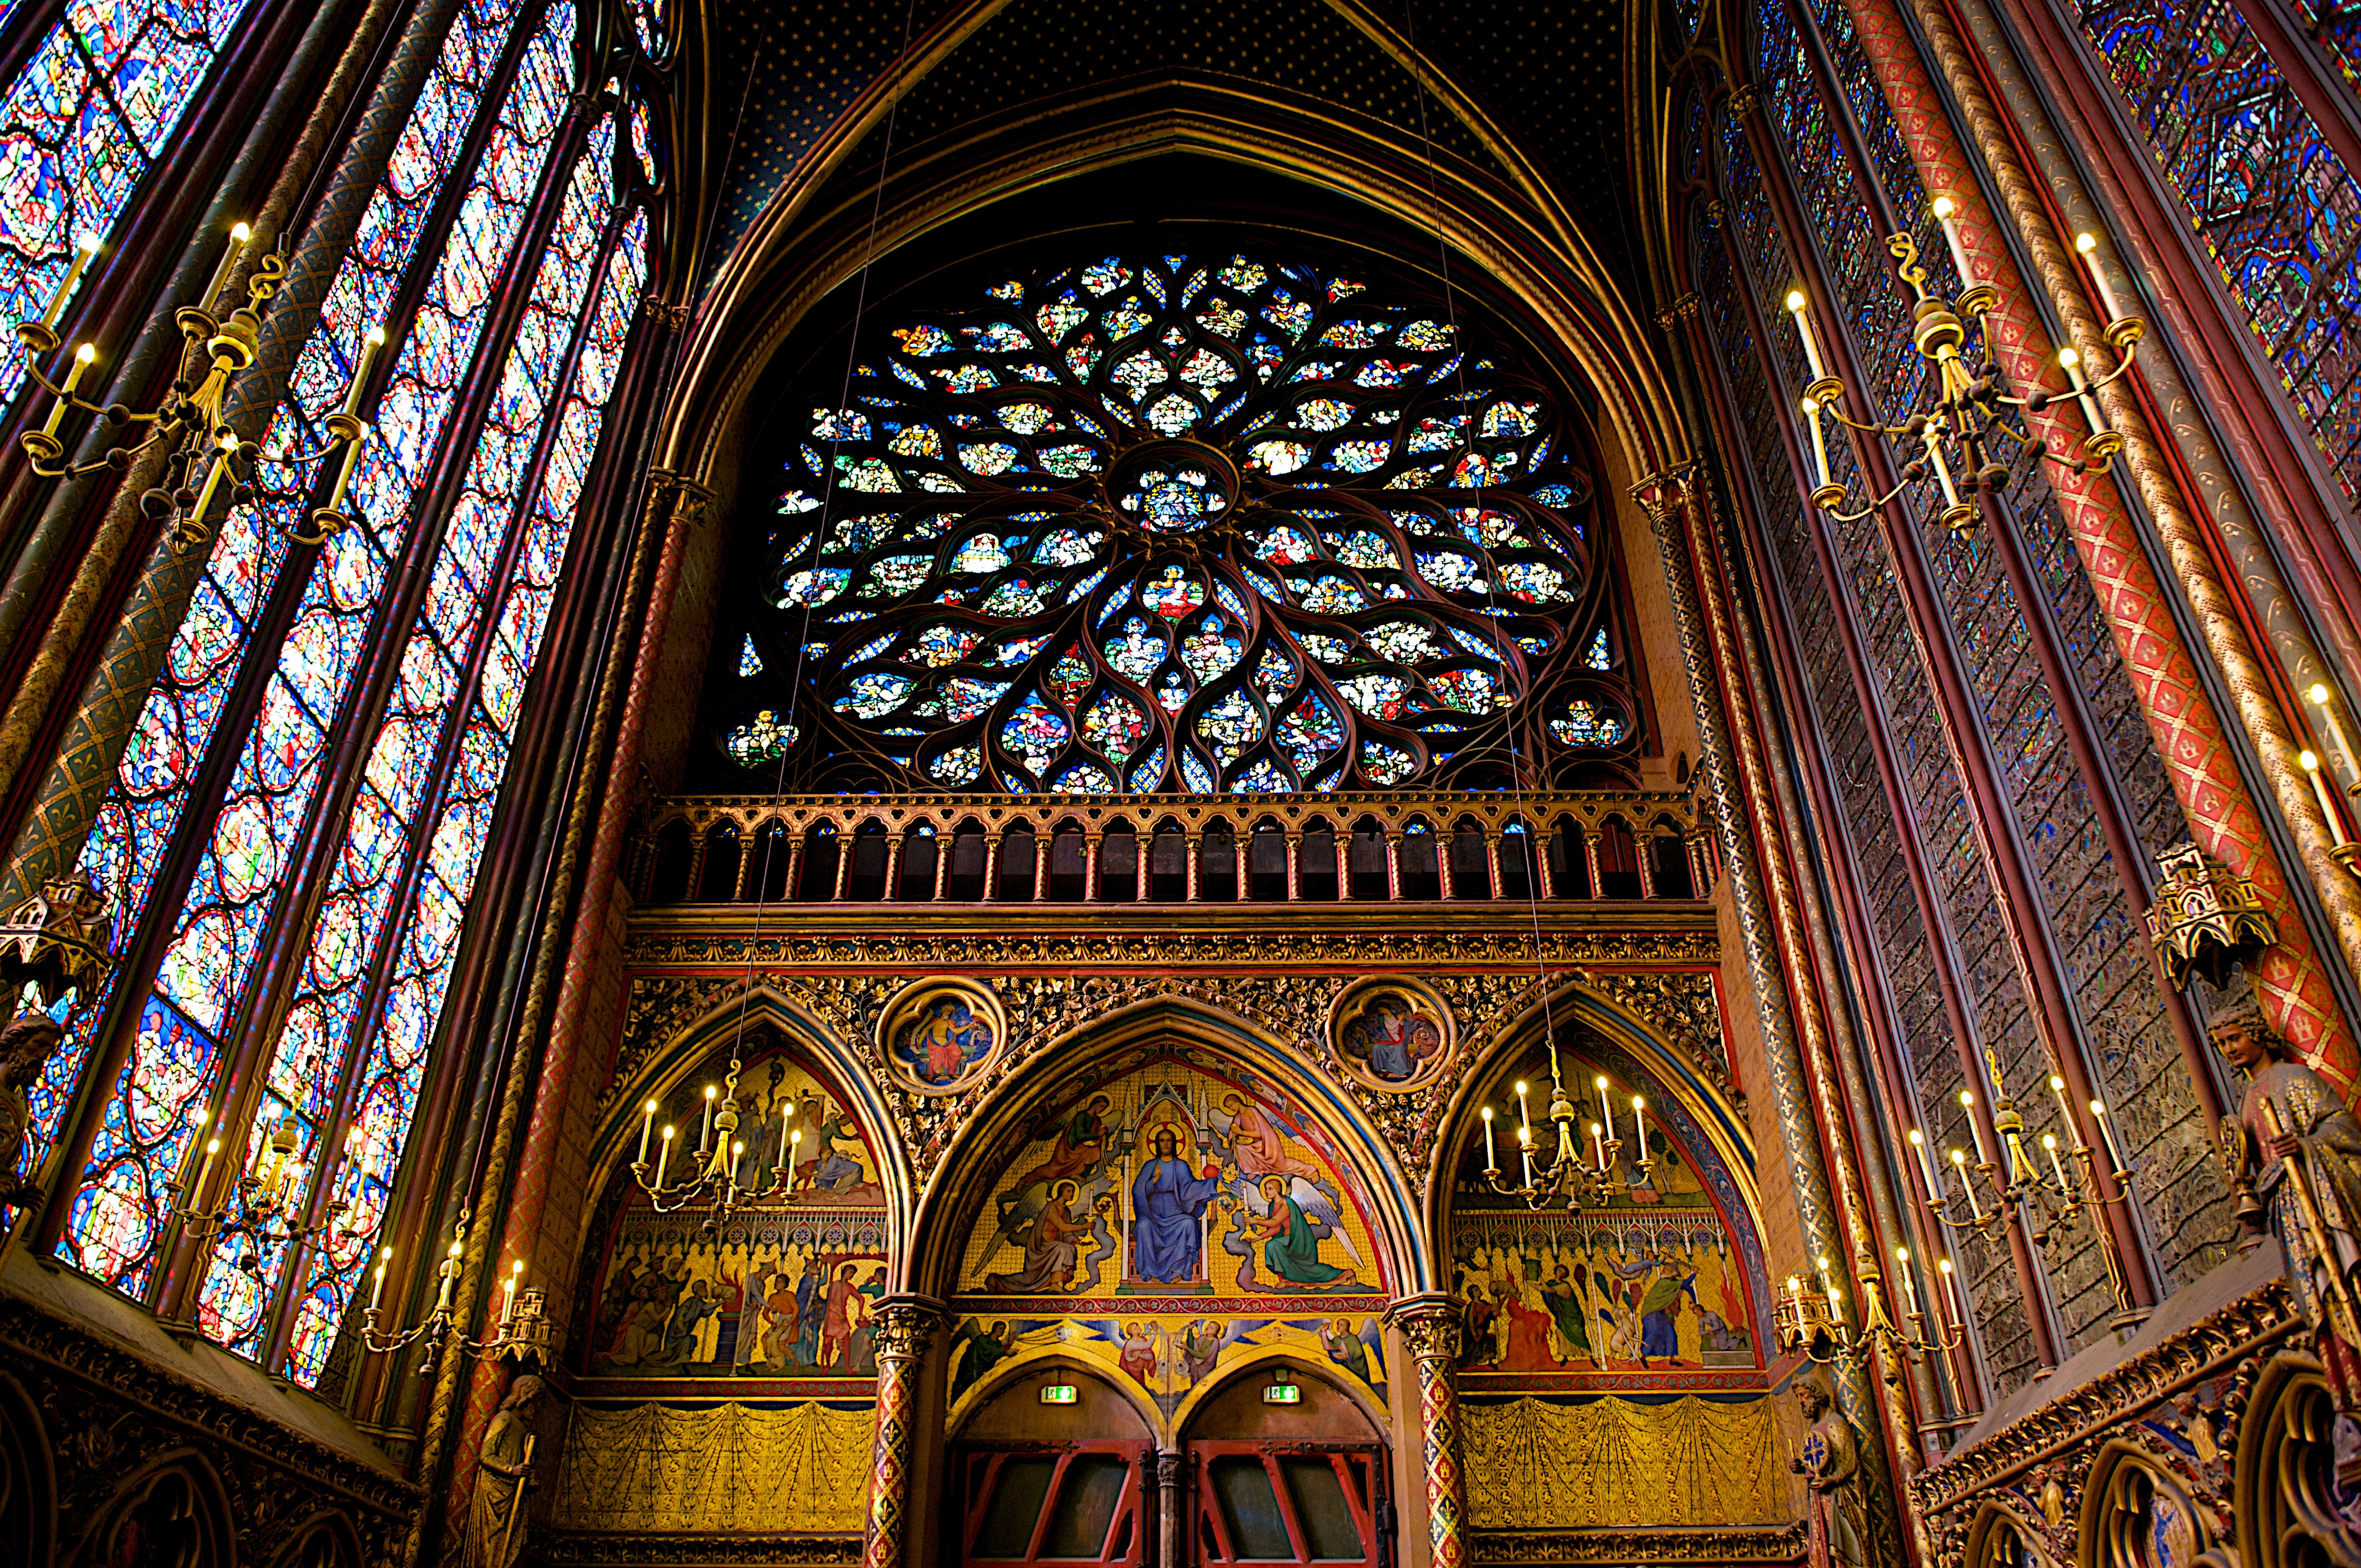 http://upload.wikimedia.org/wikipedia/commons/c/c2/Interior_of_Sainte-Chapelle_(Paris_October_31,_2009).jpg